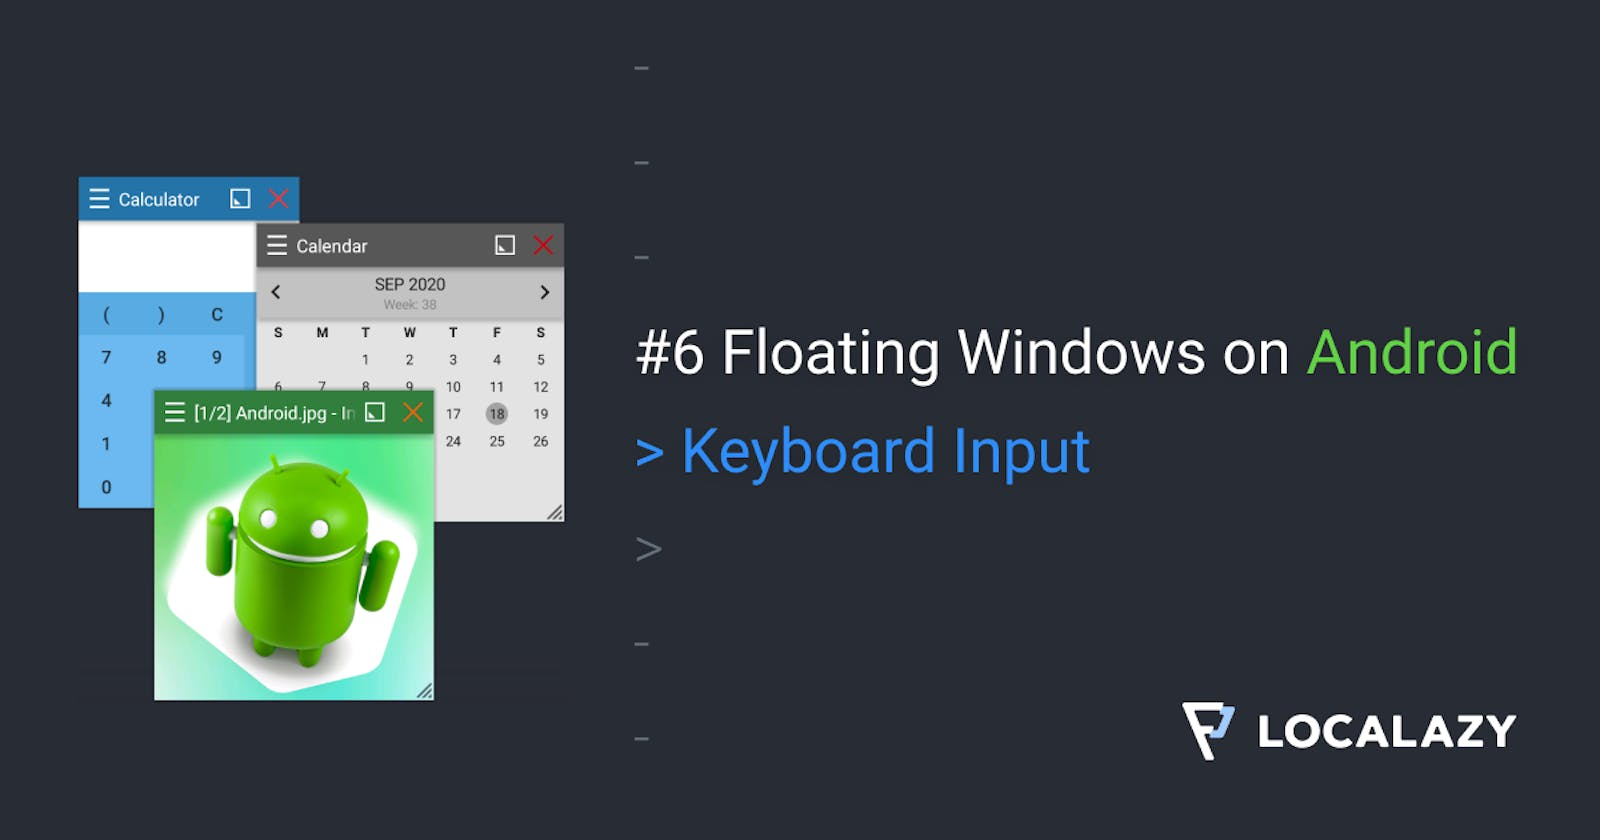 #6 Floating Windows on Android: Keyboard Input